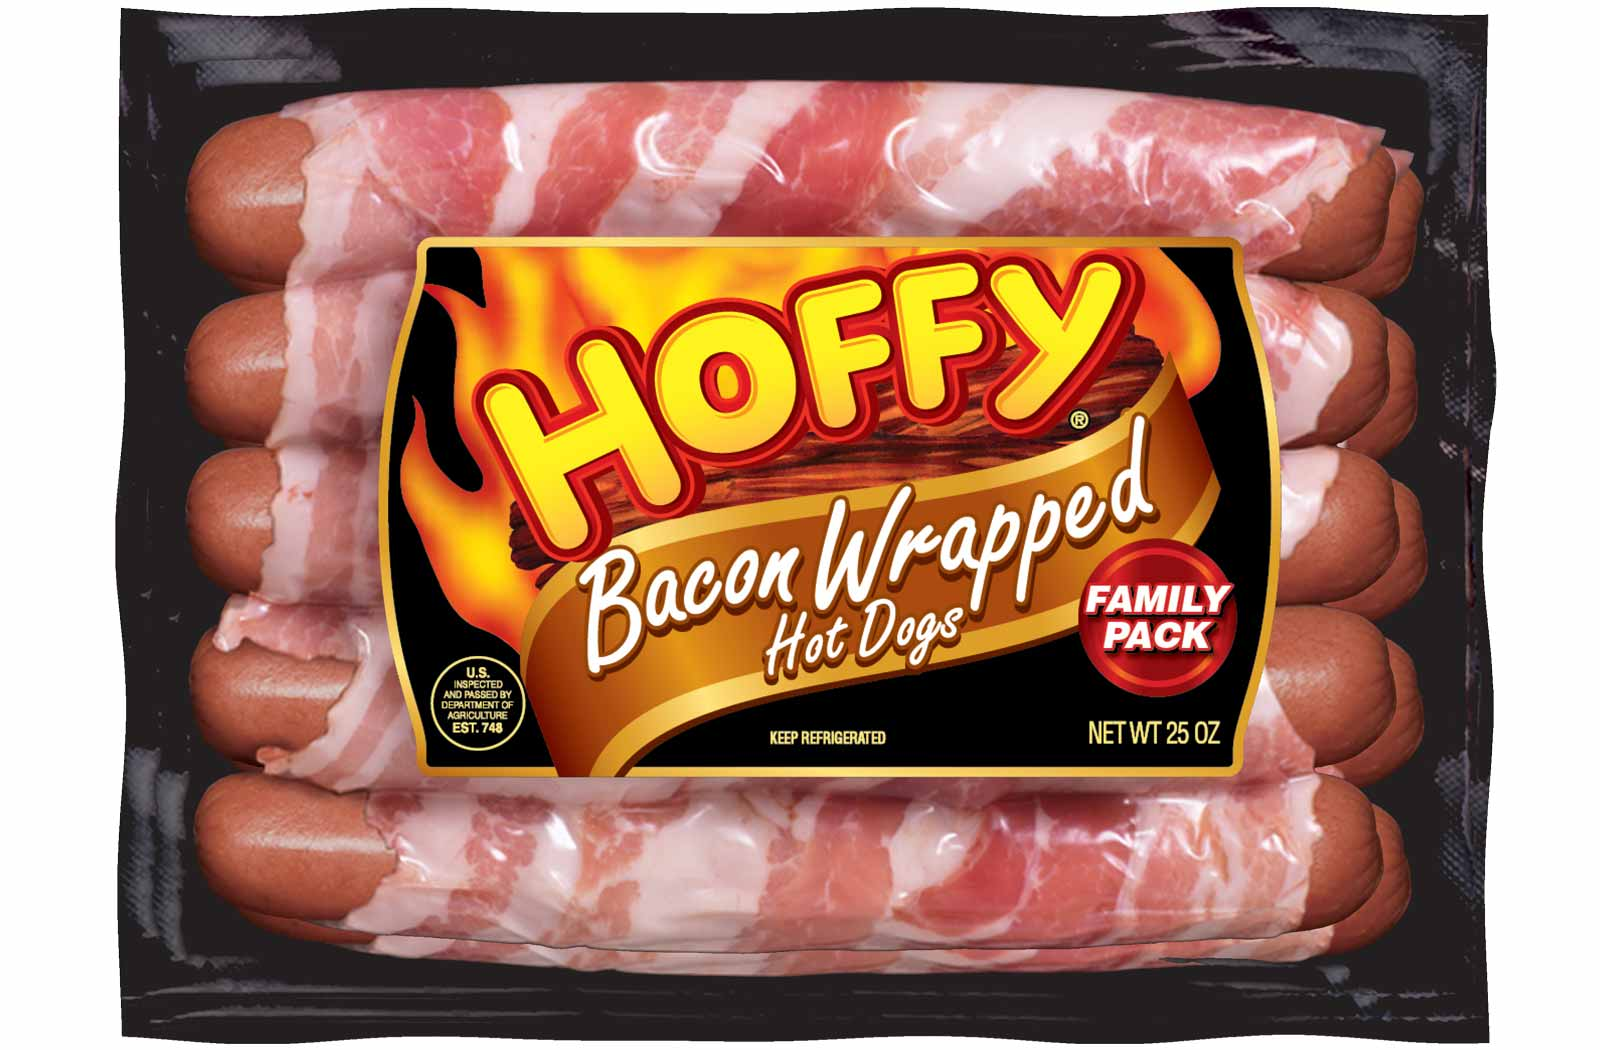 Bacon Wrapped Hot Dogs – Family Pack